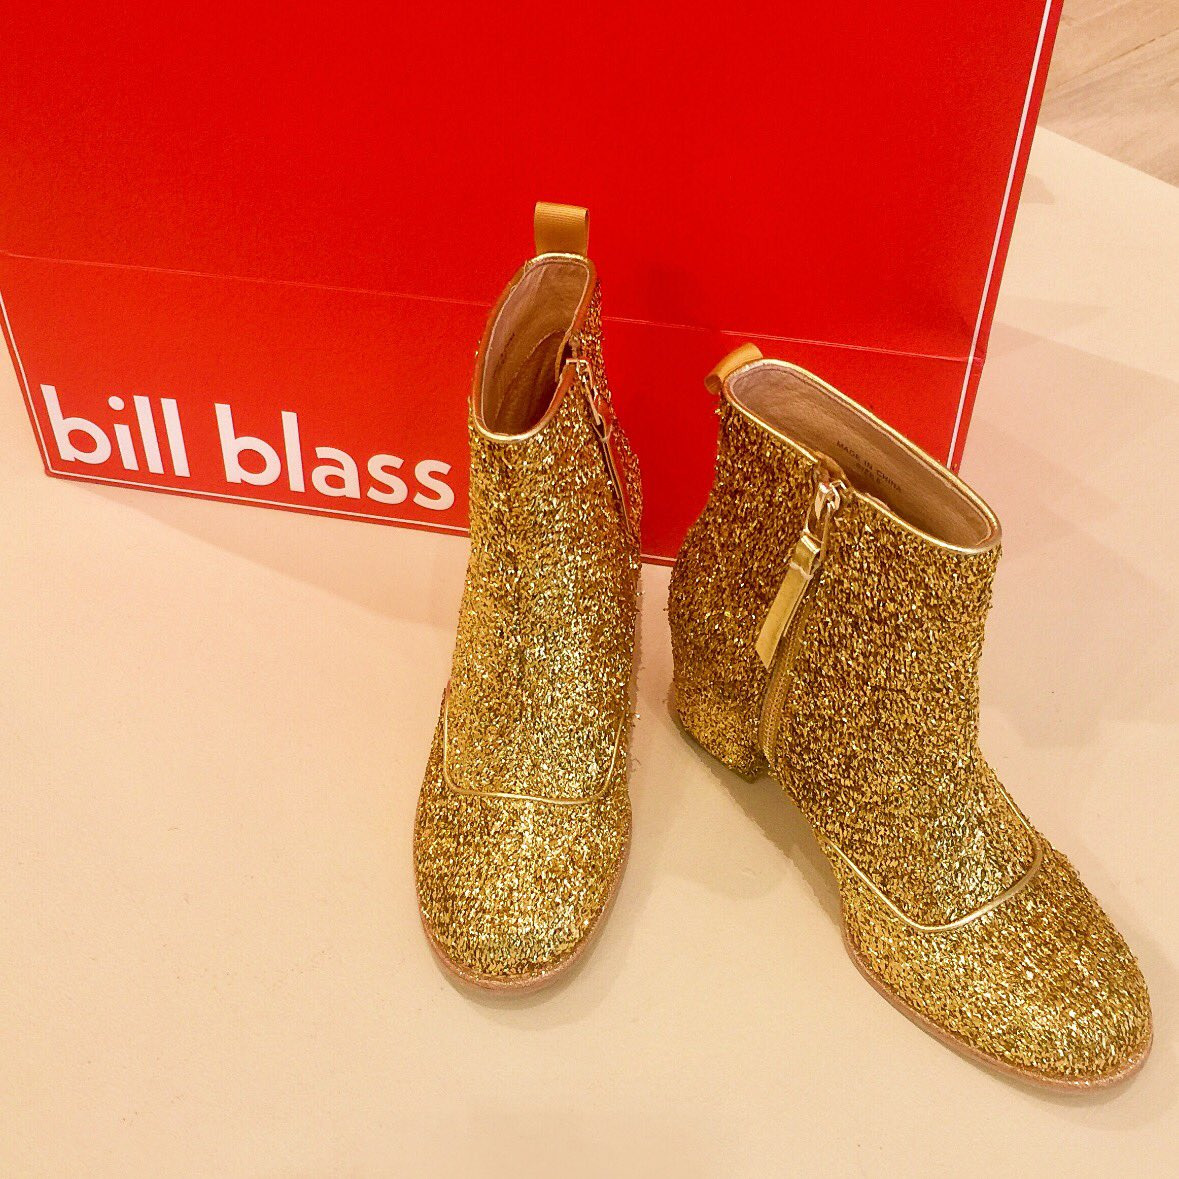 BB Bootie Gold is ready to shine your day and night! Link in bio for our fall collection! #billblass #bootie #shoes #gold https://t.co/NrxFAh1ITE